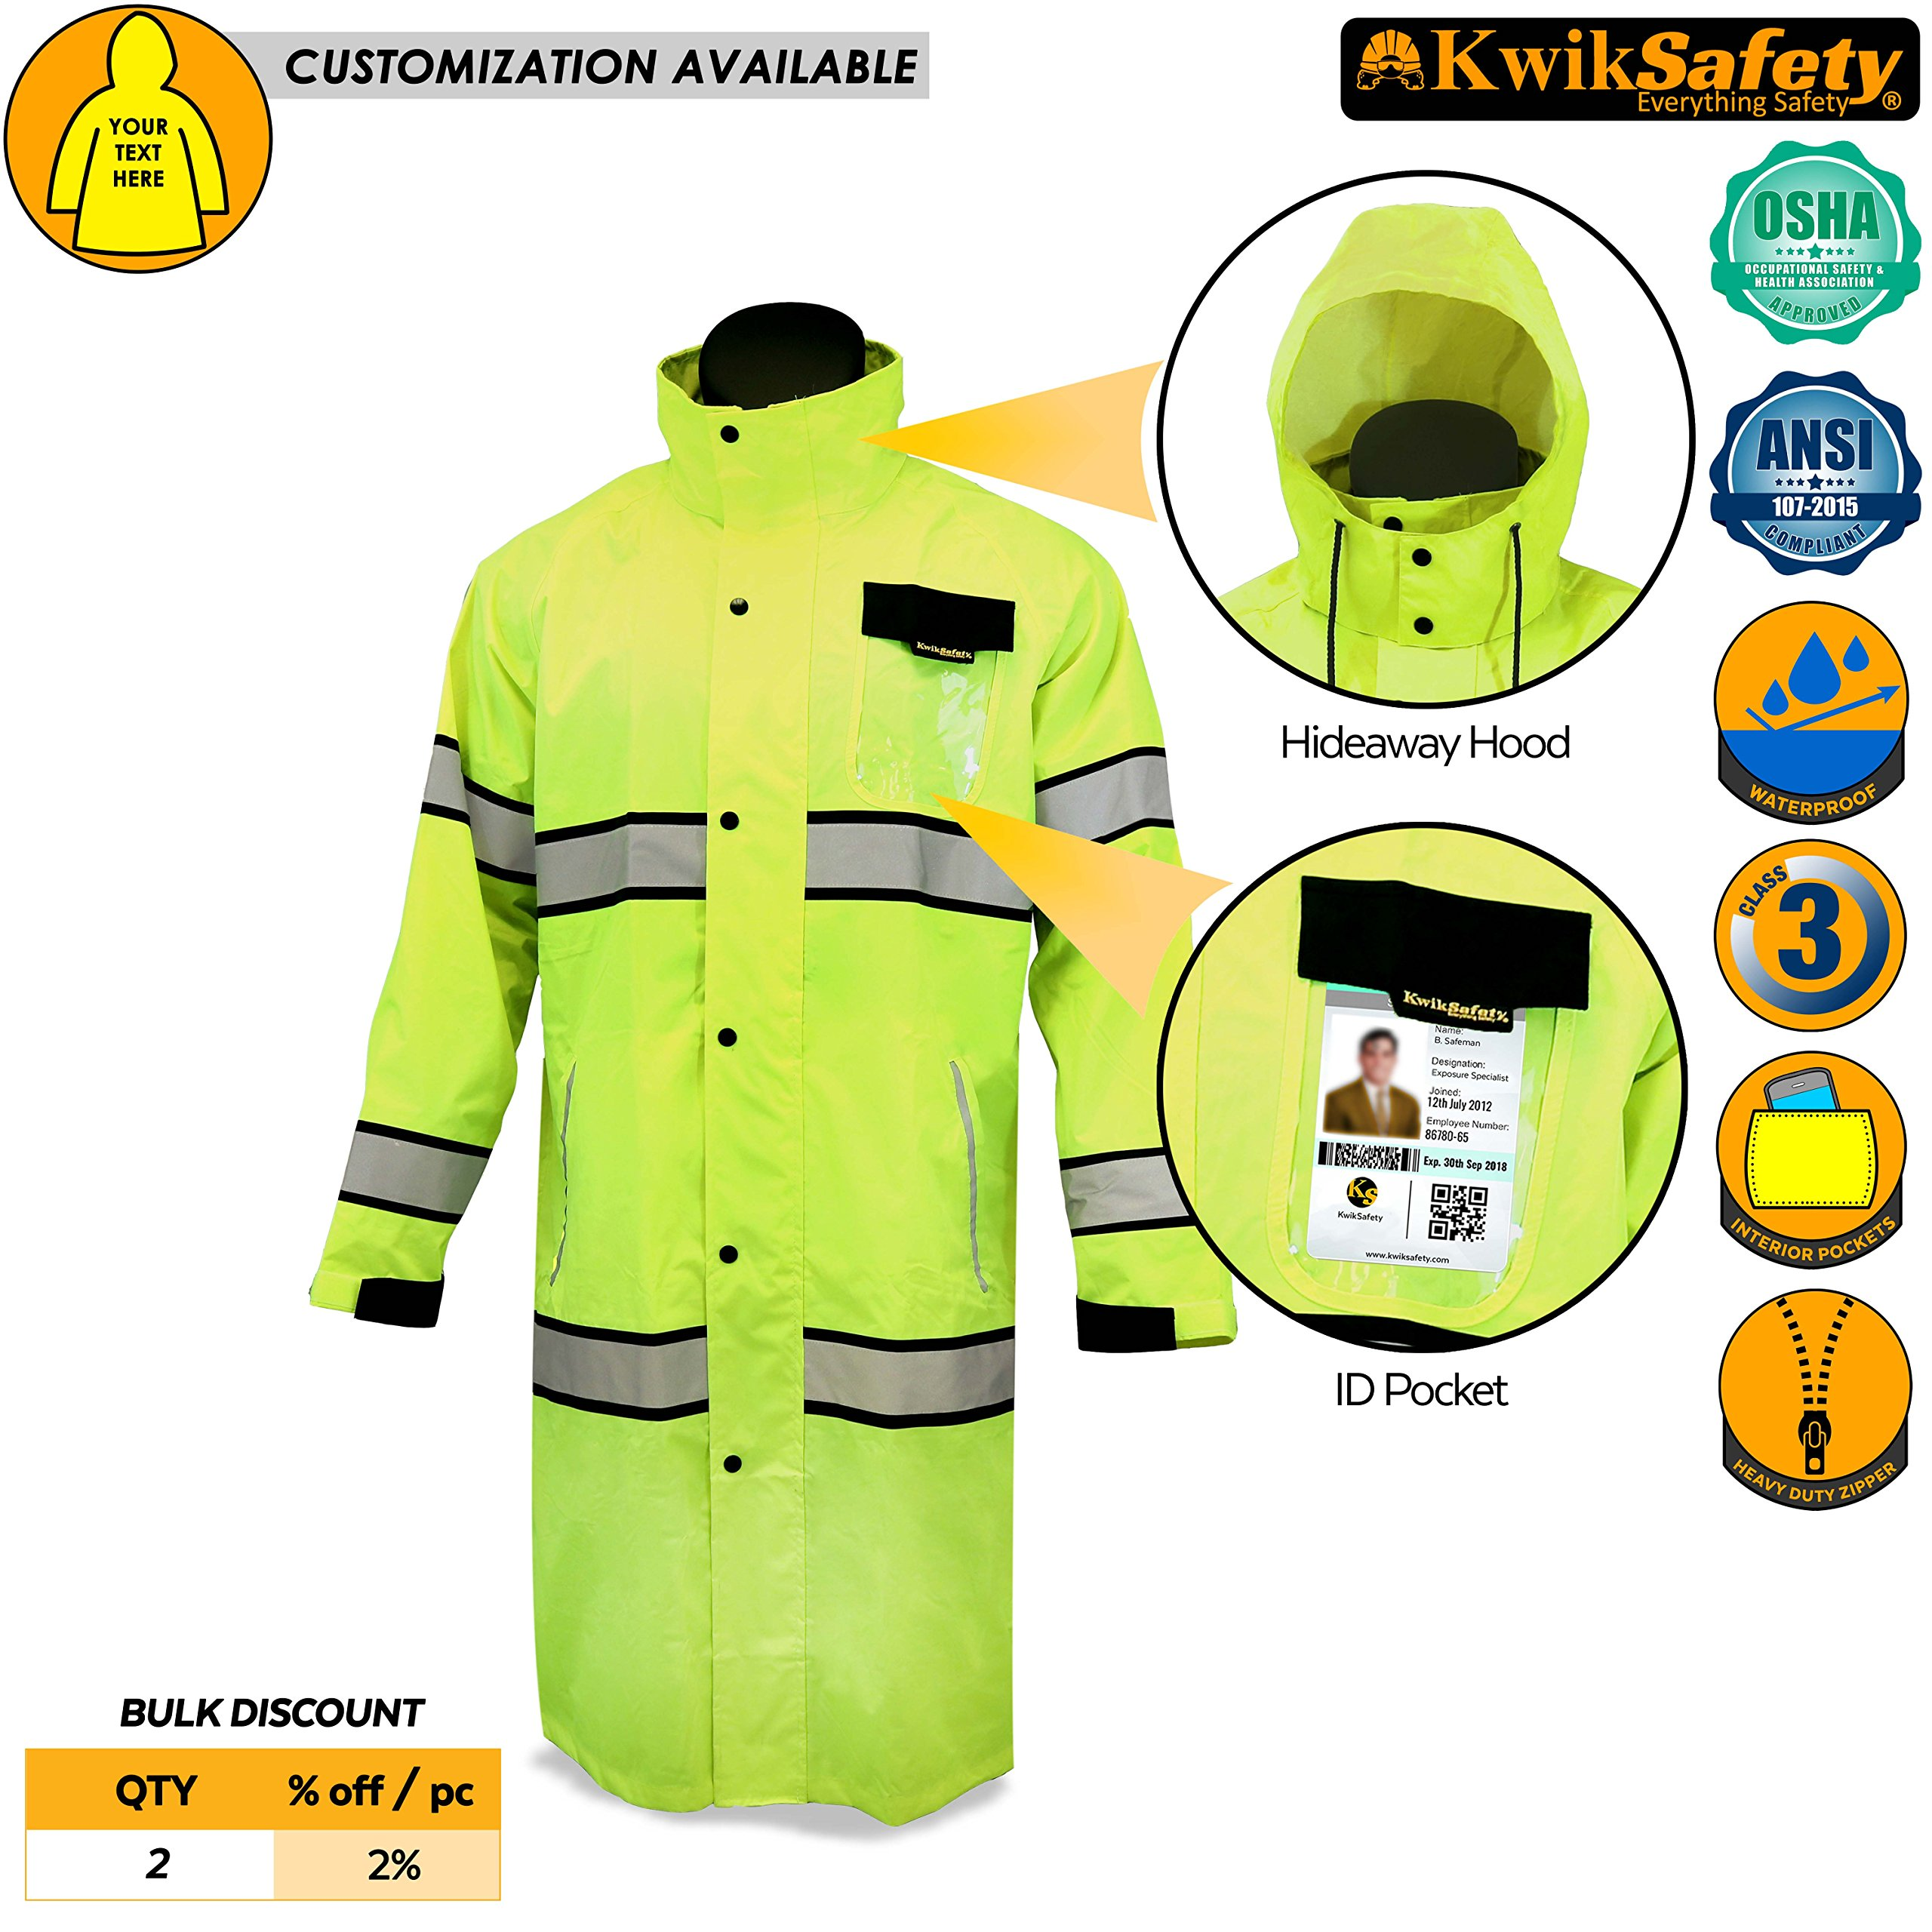 KwikSafety TORRENT | High Visibility Class 3 Safety Trench Coat | Waterproof Windproof Safety Rain Jacket | 360° Hi Vis Reflective ANSI Compliant Work Wear | Rain Gear Hideaway Hood Carry Bag | XL